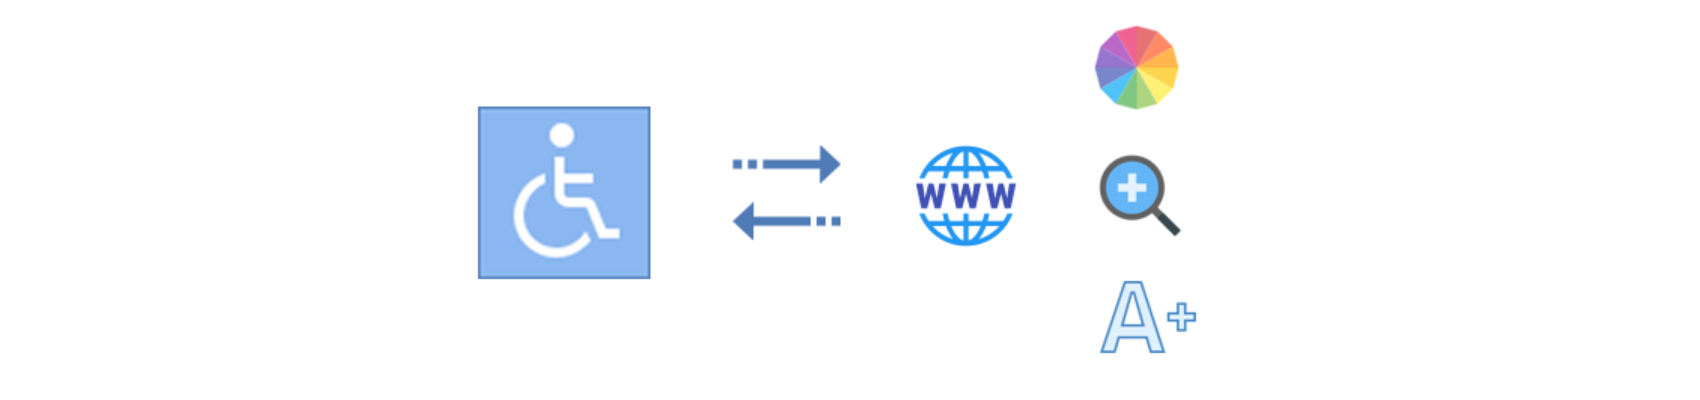 Why Web Accessibility Matters